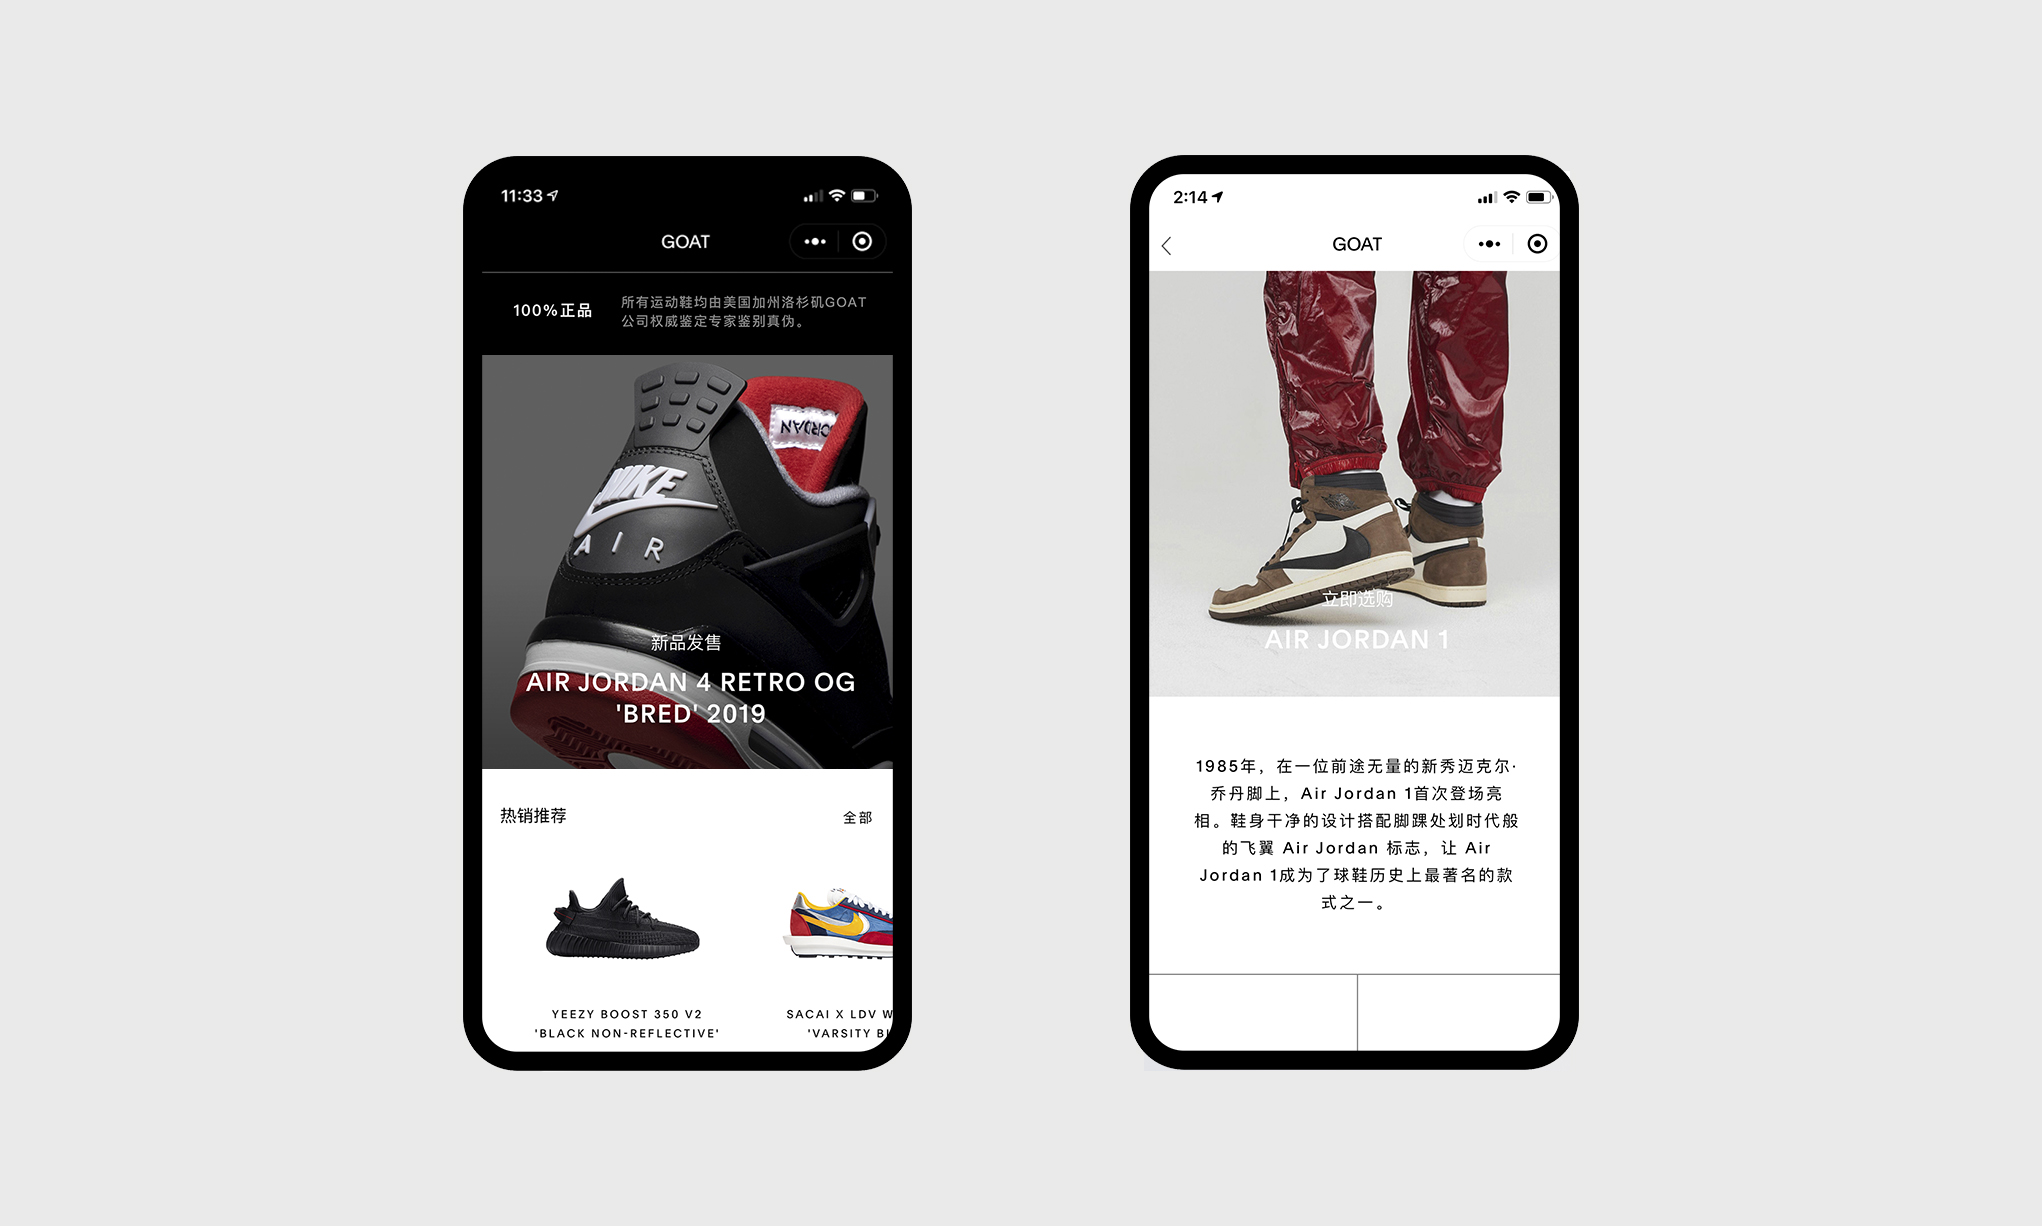 Online sneaker marketplace GOAT is launching a new app in China.